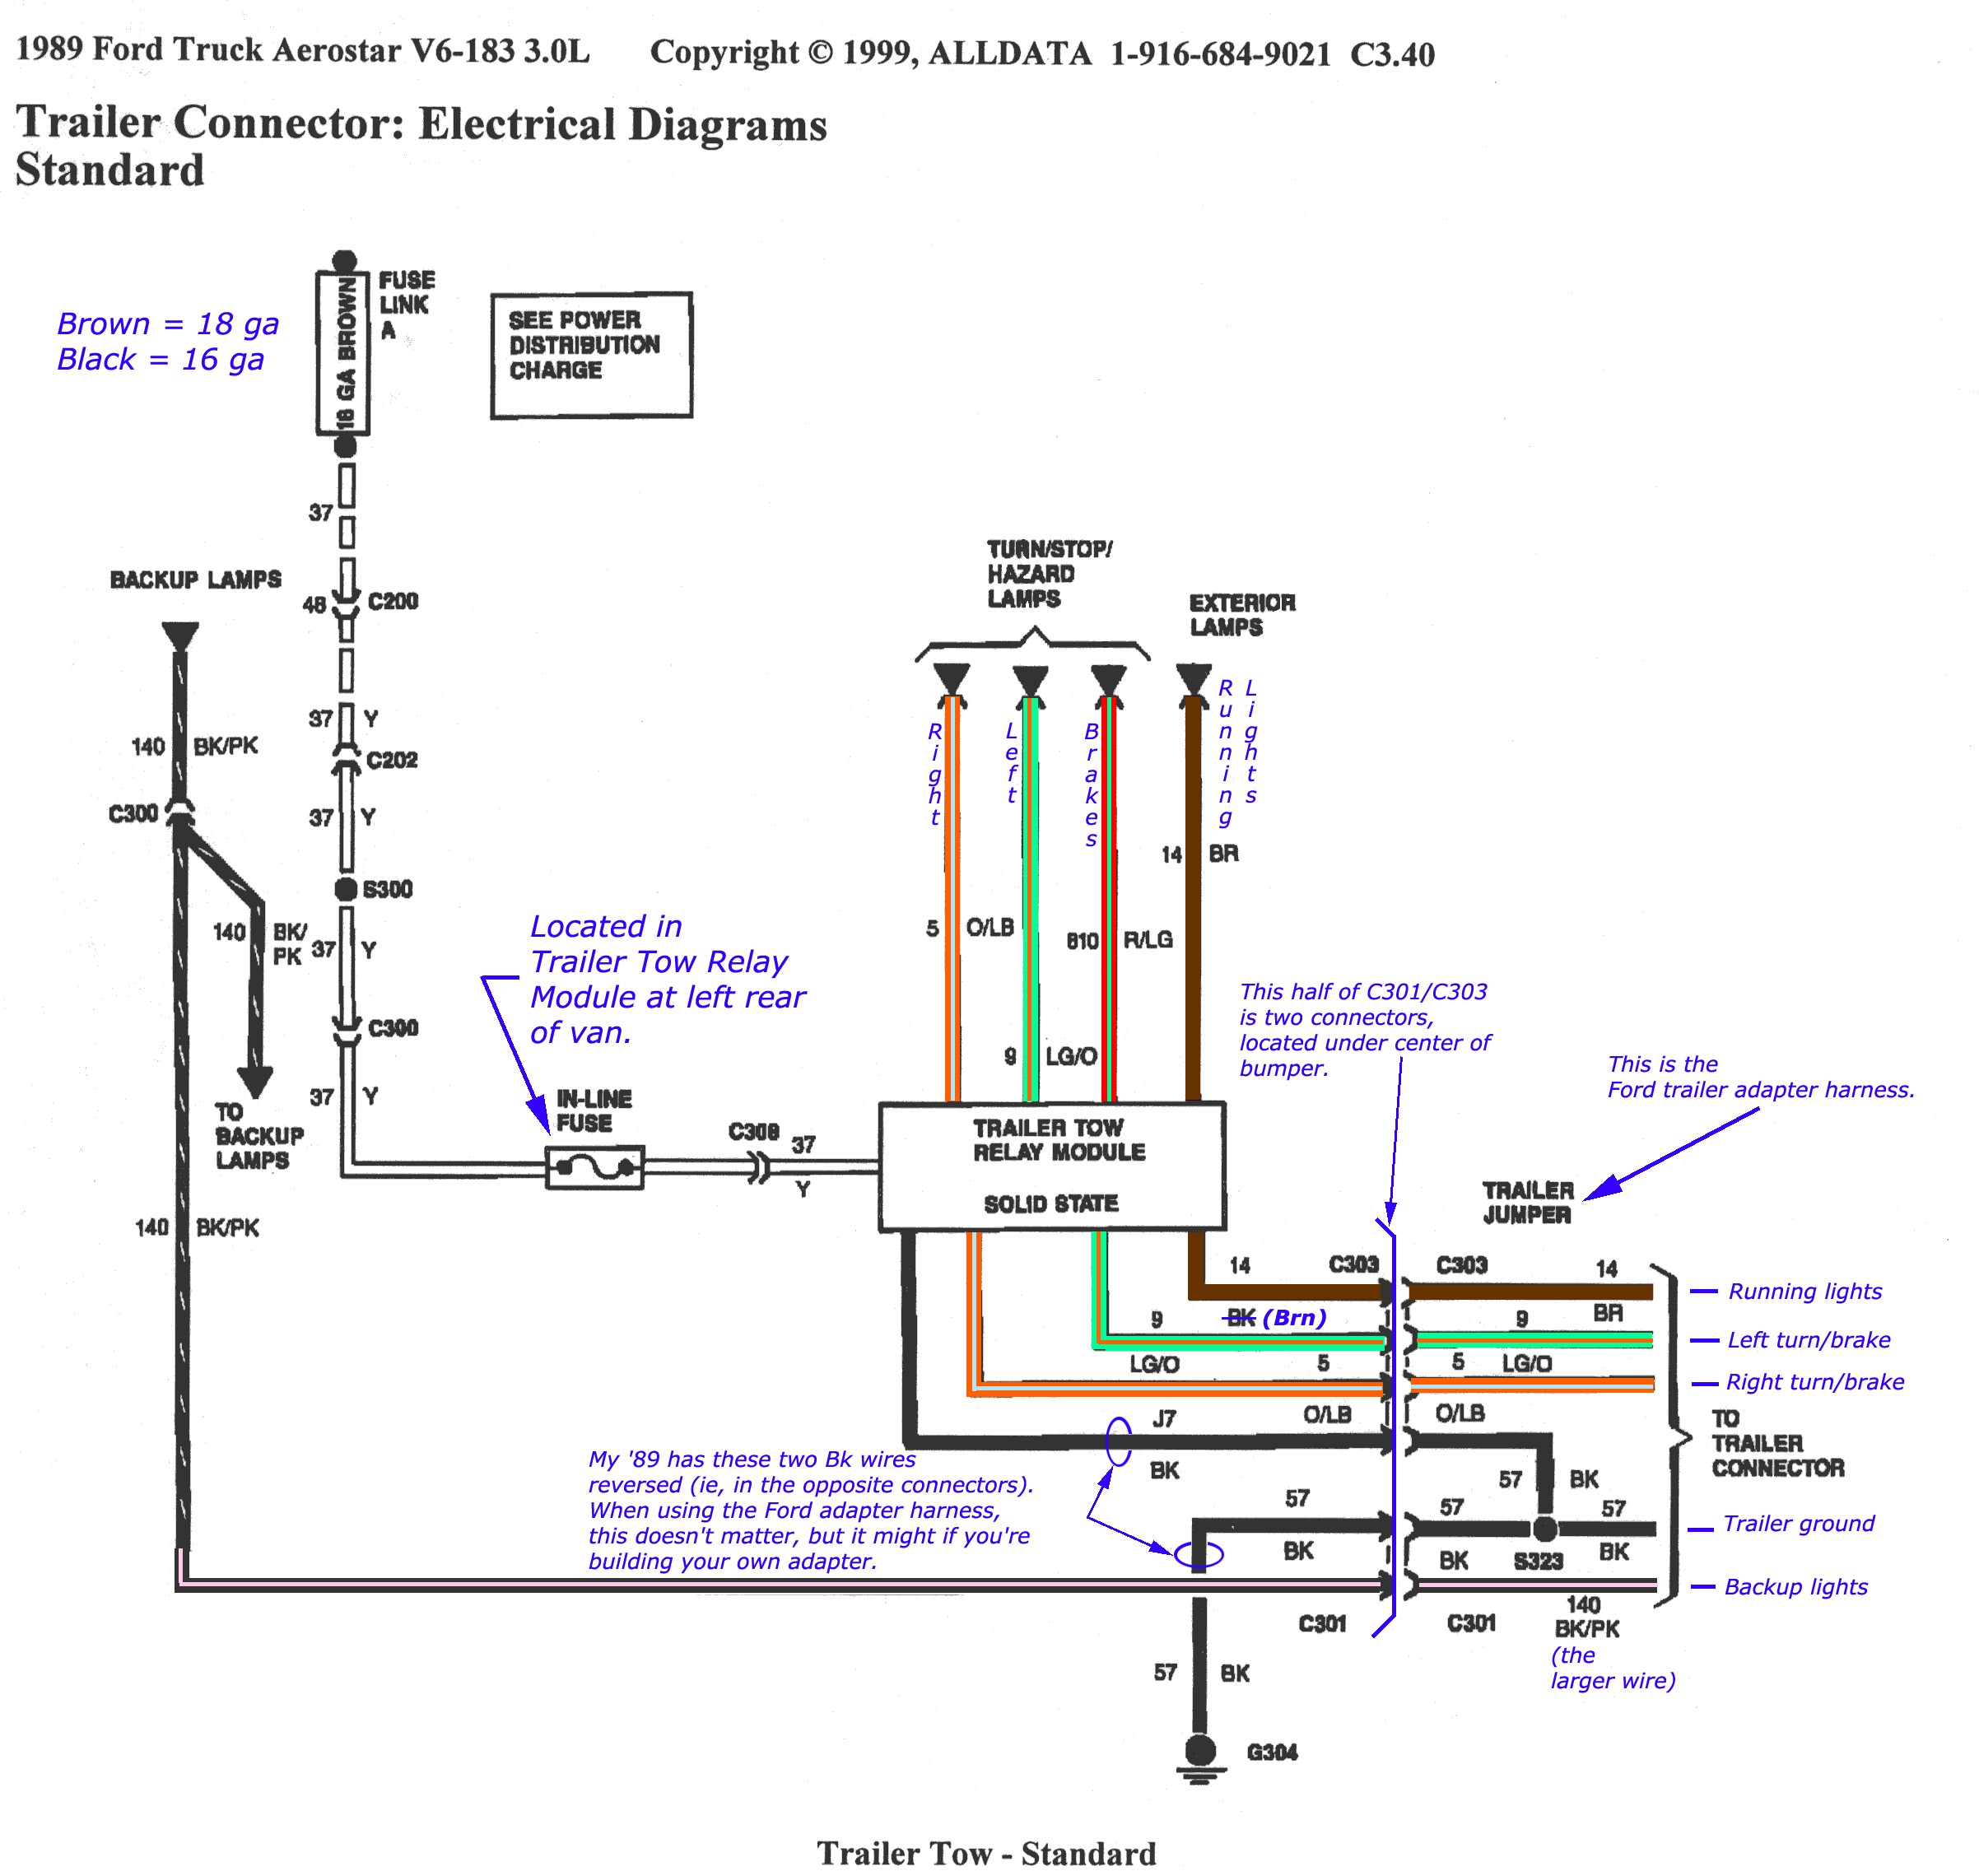 2003 F250 Trailer Wiring Diagram | Wiring Diagram - Wiring Diagram For Trailer